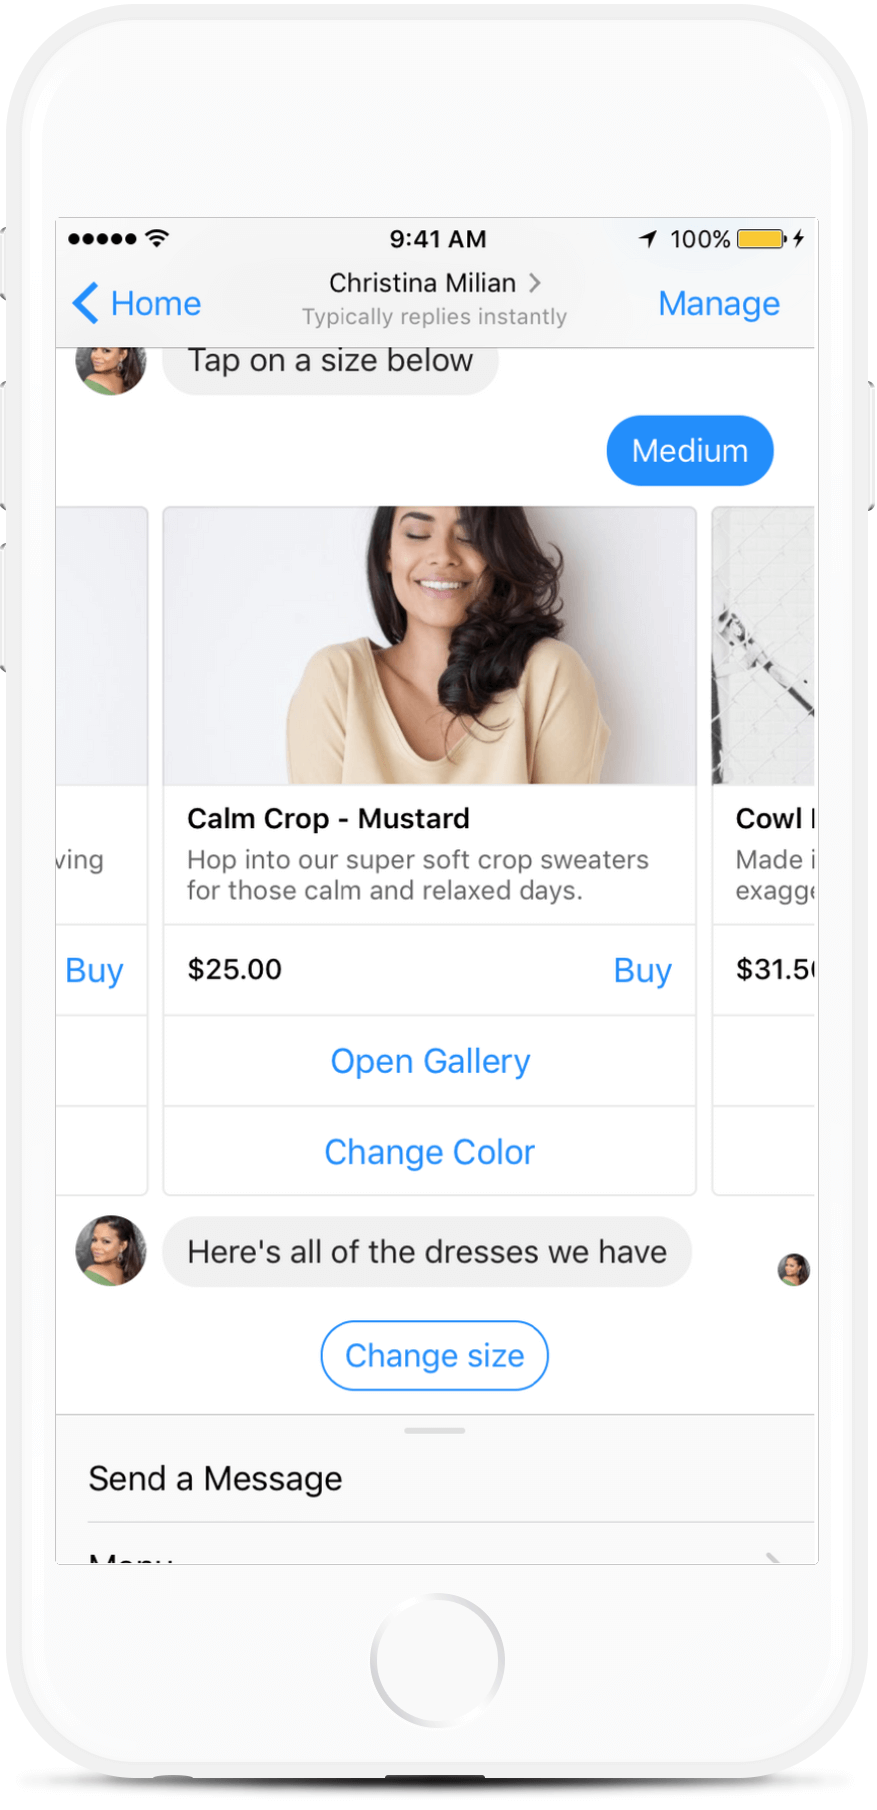 Messenger Chatbot Like Christina Milian